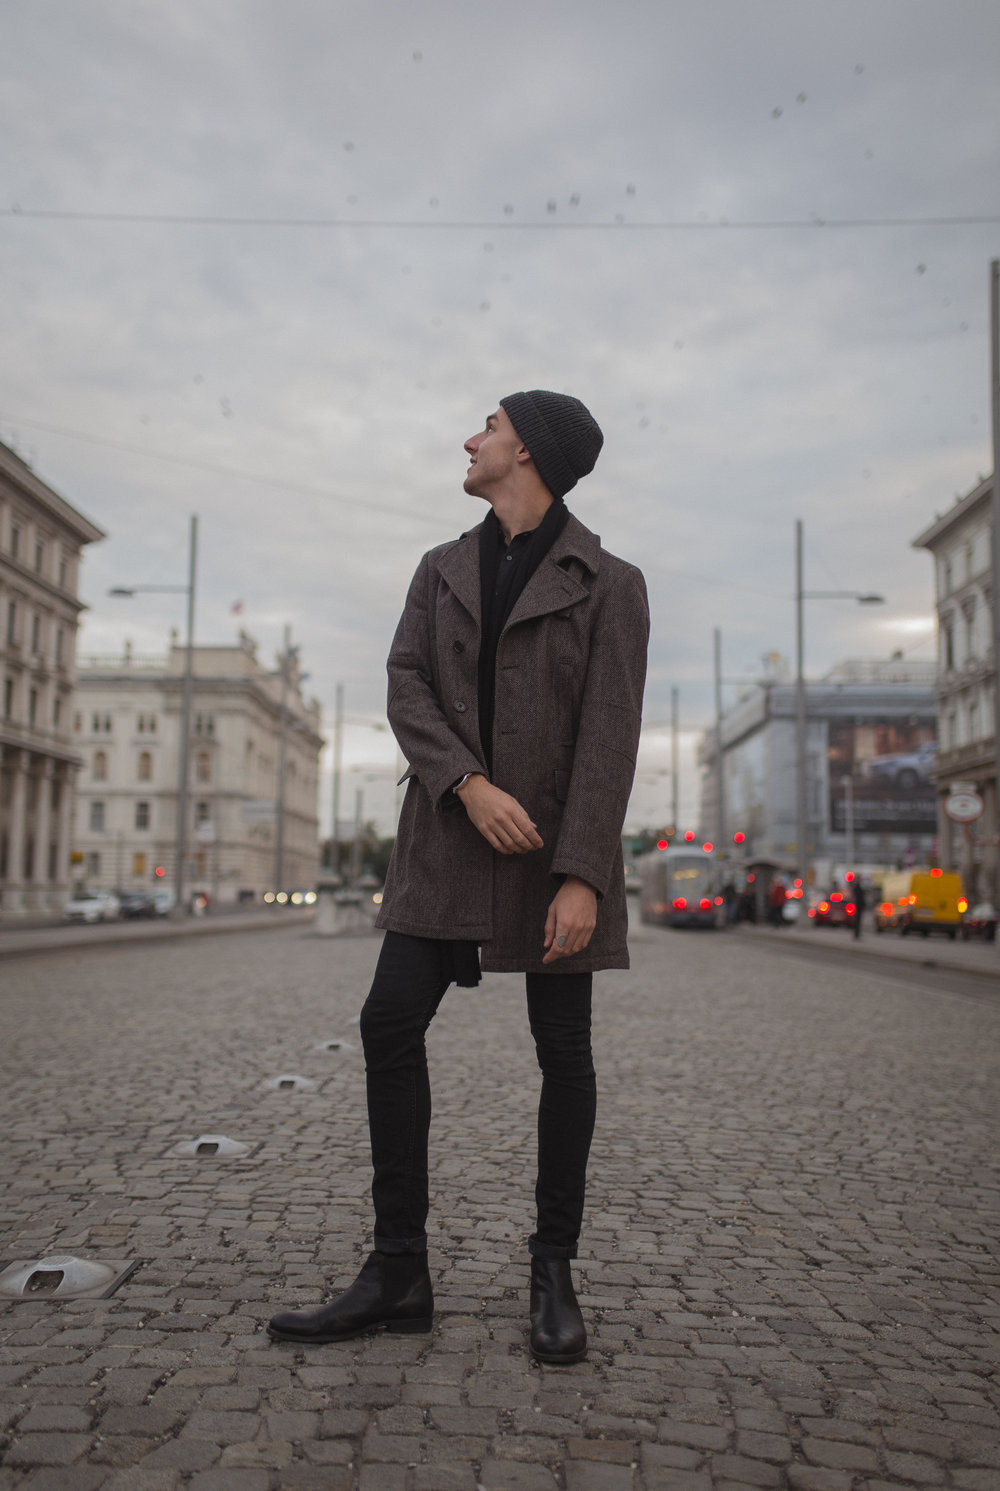 OUTFIT:    Coat - (VINTAGE)    Shirt - OLYMP    Jeans - LEVI`S    Boots - PAT CALVIN    Scarf - COS    Cap - COS    Watch - EMPORIO ARMANI    Ring - (VINTAGE)       Photography:  Sonja Petrkowsky